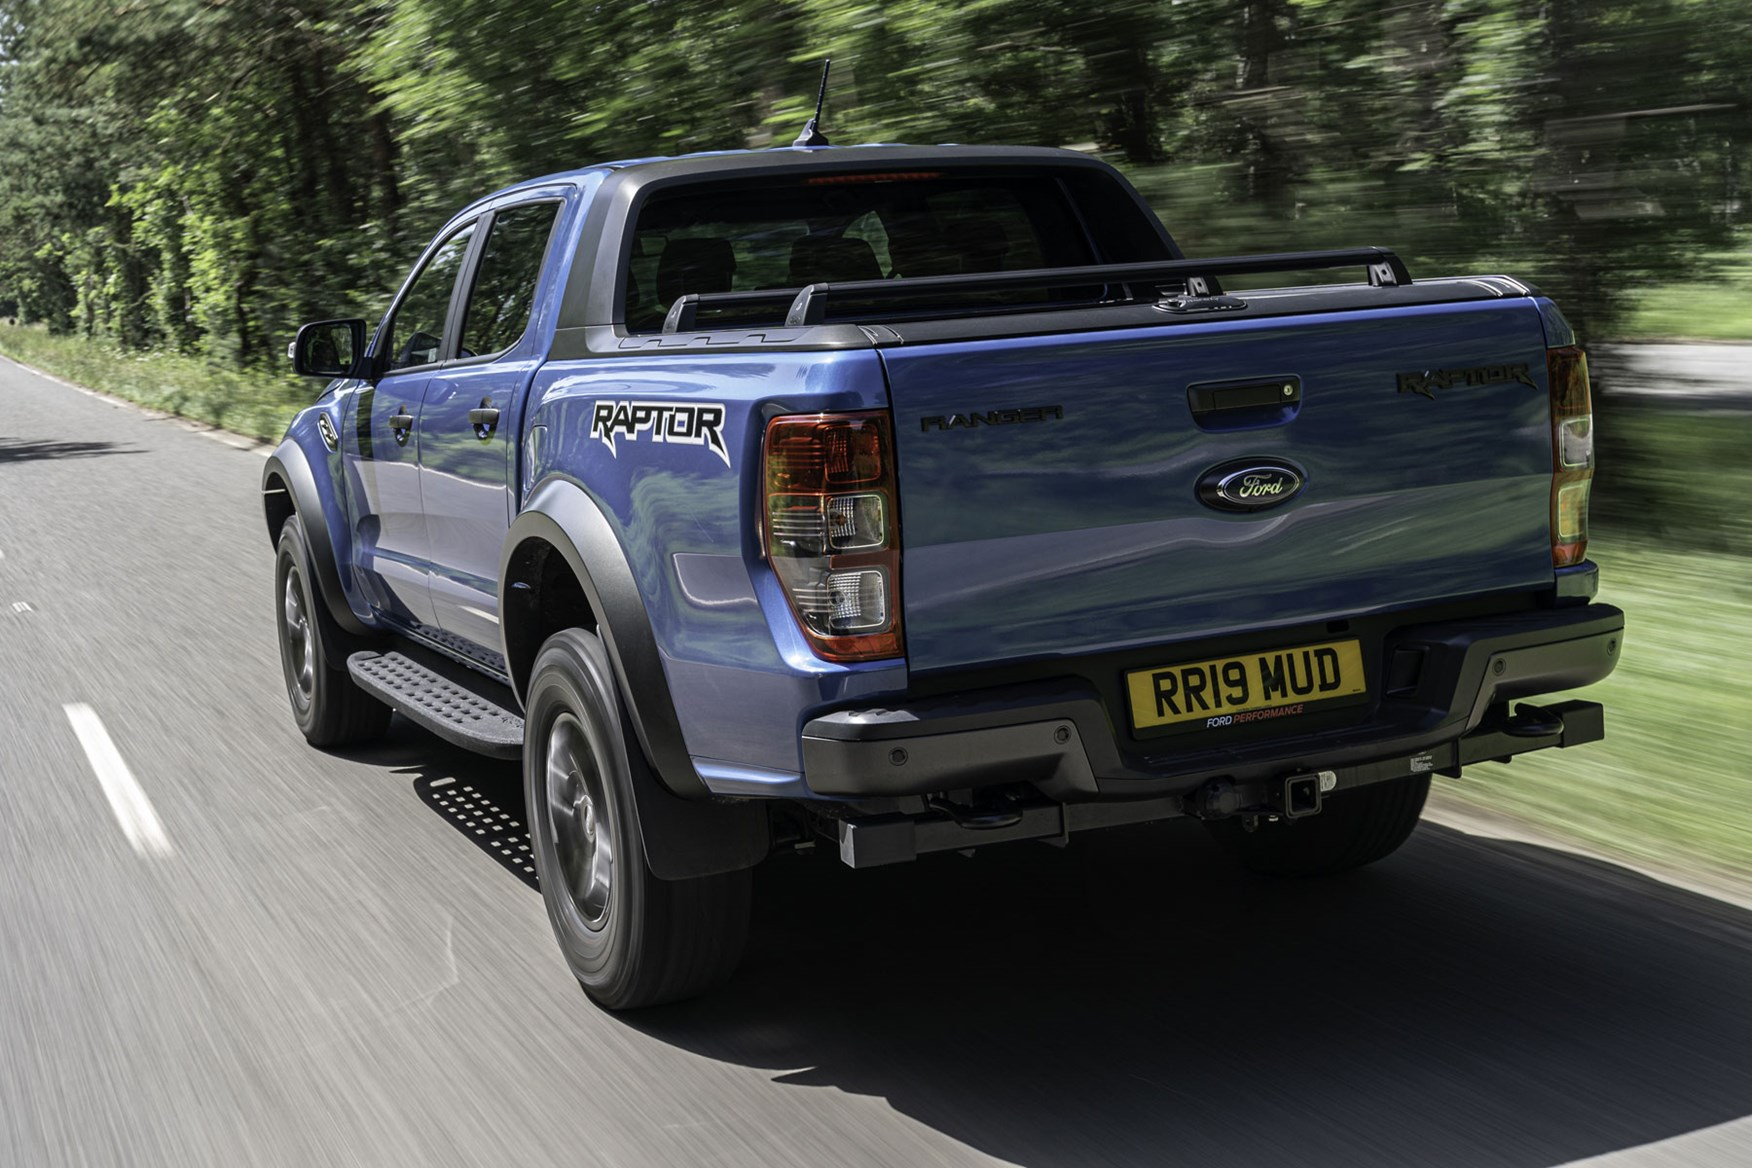 Ford Ranger Raptor review - rear view, blue, driving on road, 2019